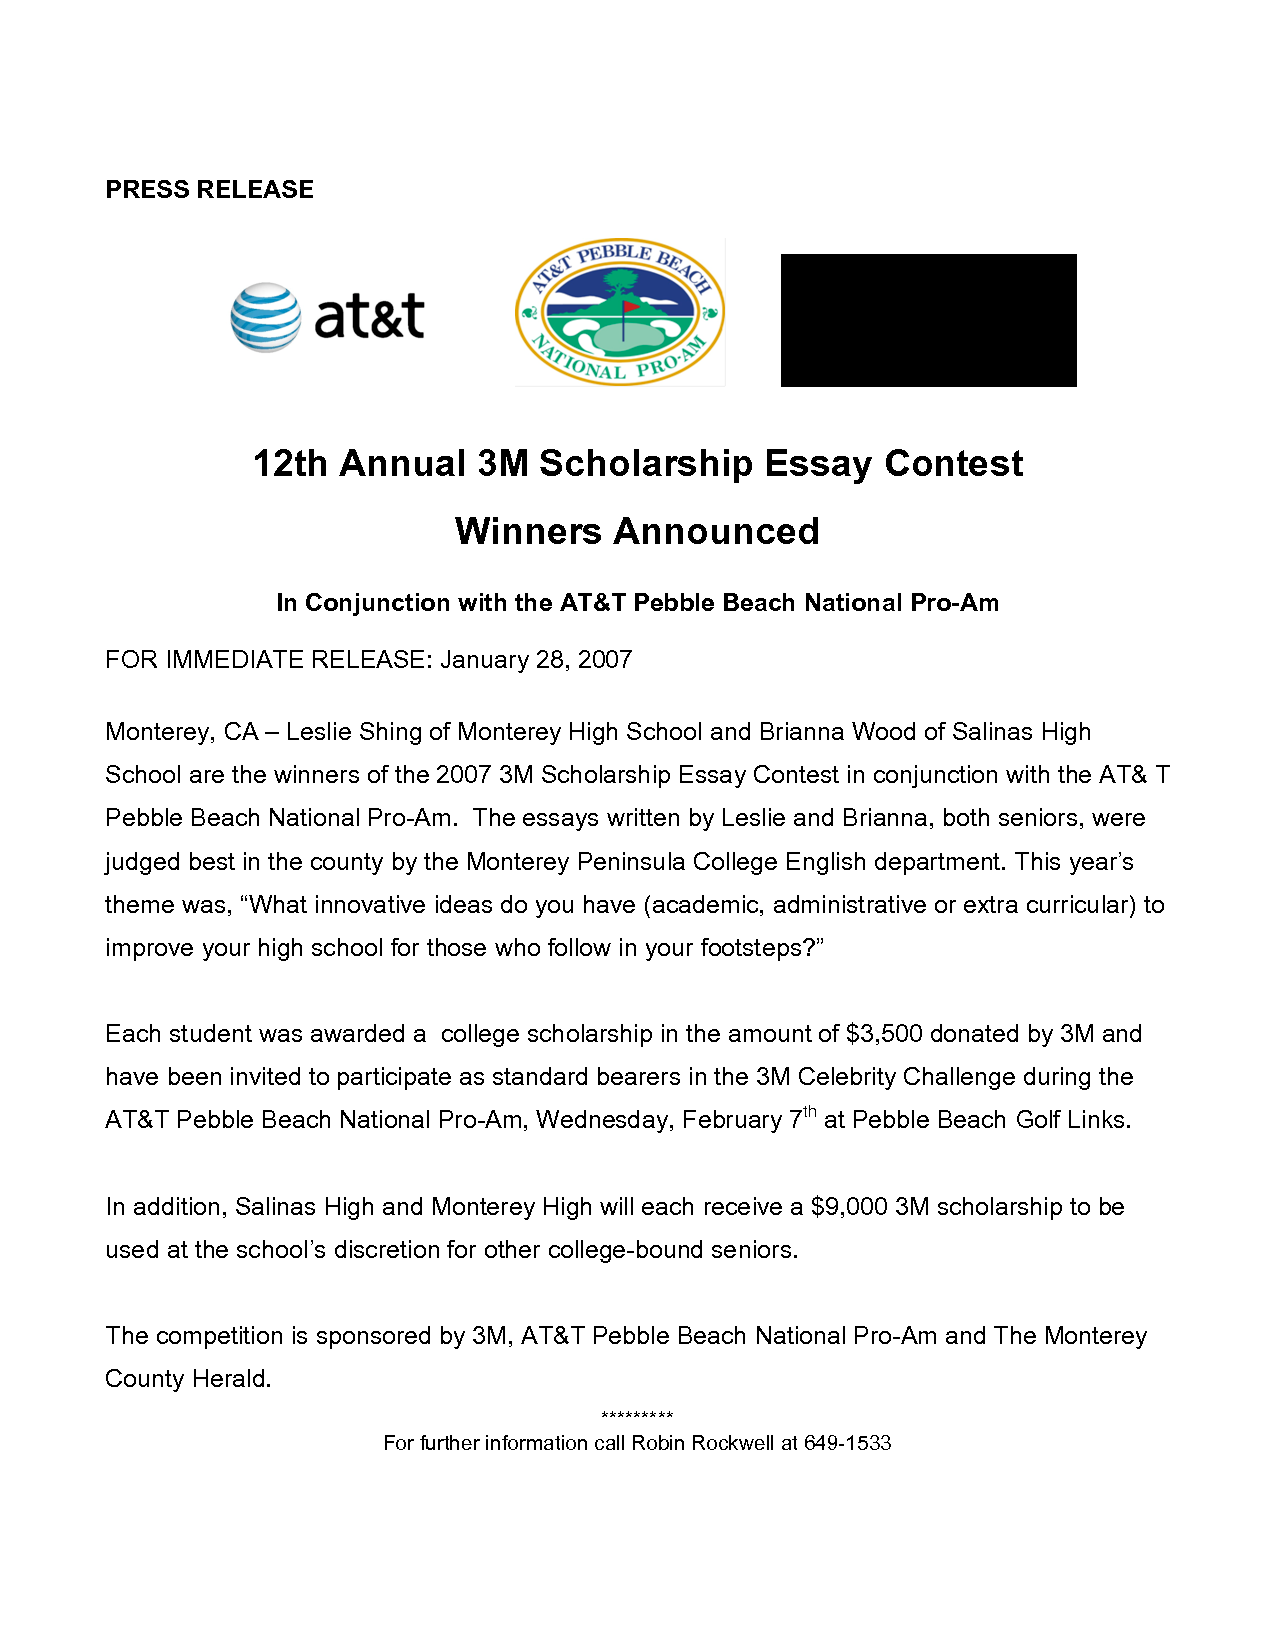 002 Essay Scholarships For High School Students Example Scholarship Application Help Contests Juniors 3 No Incredible Essays Examples Full